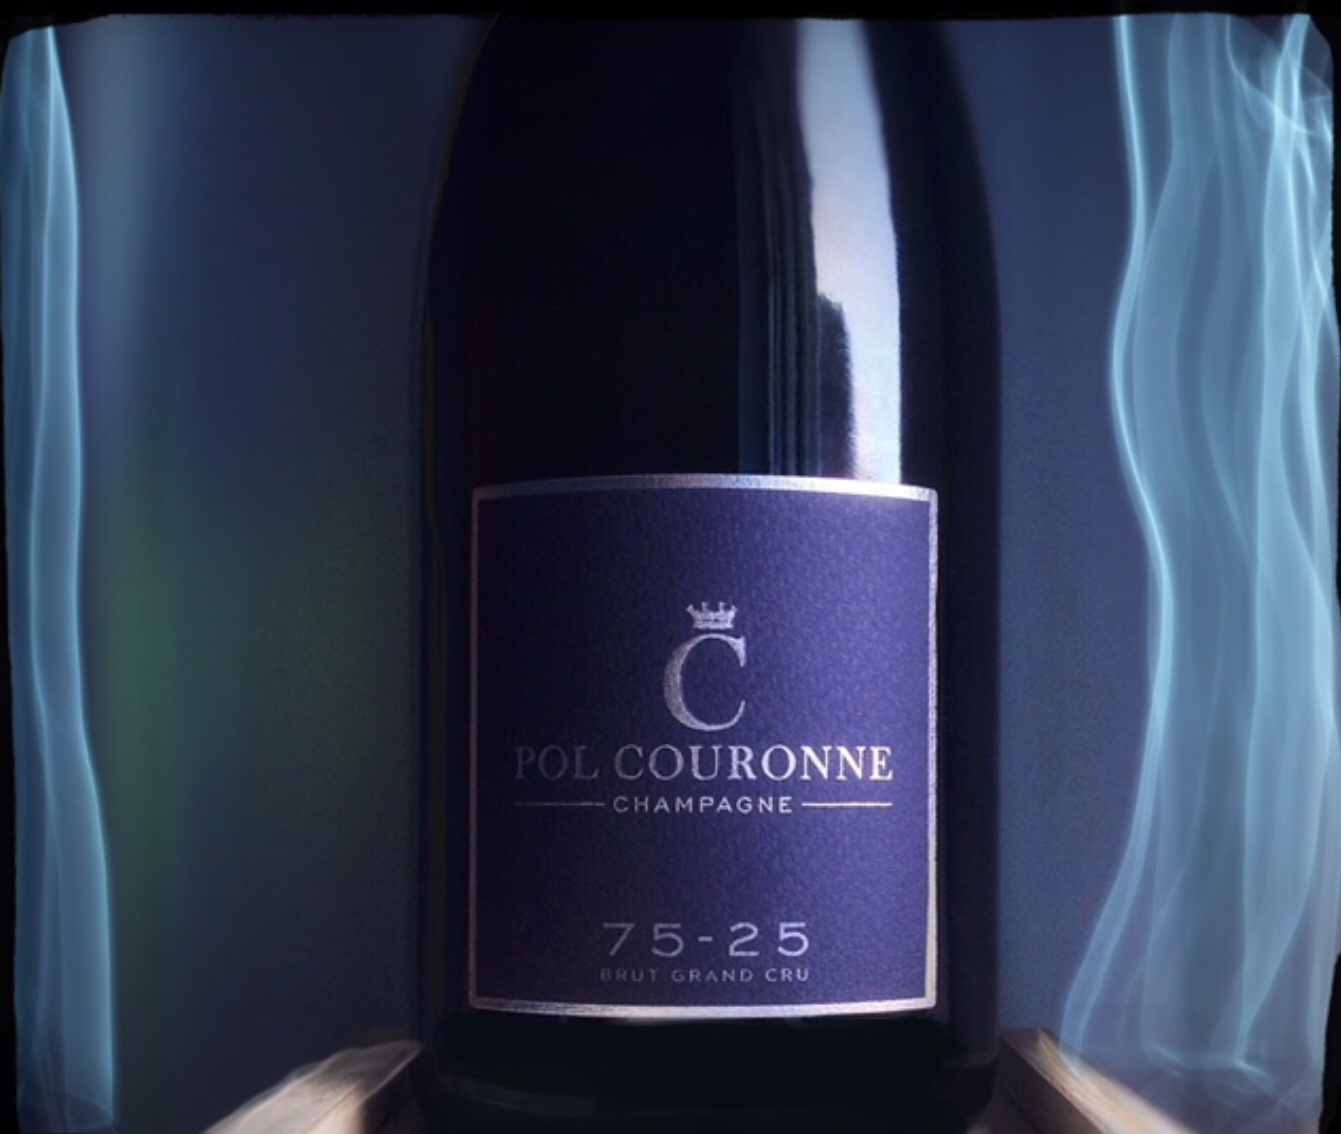 Champagne Start-Up: Building the Bubbles